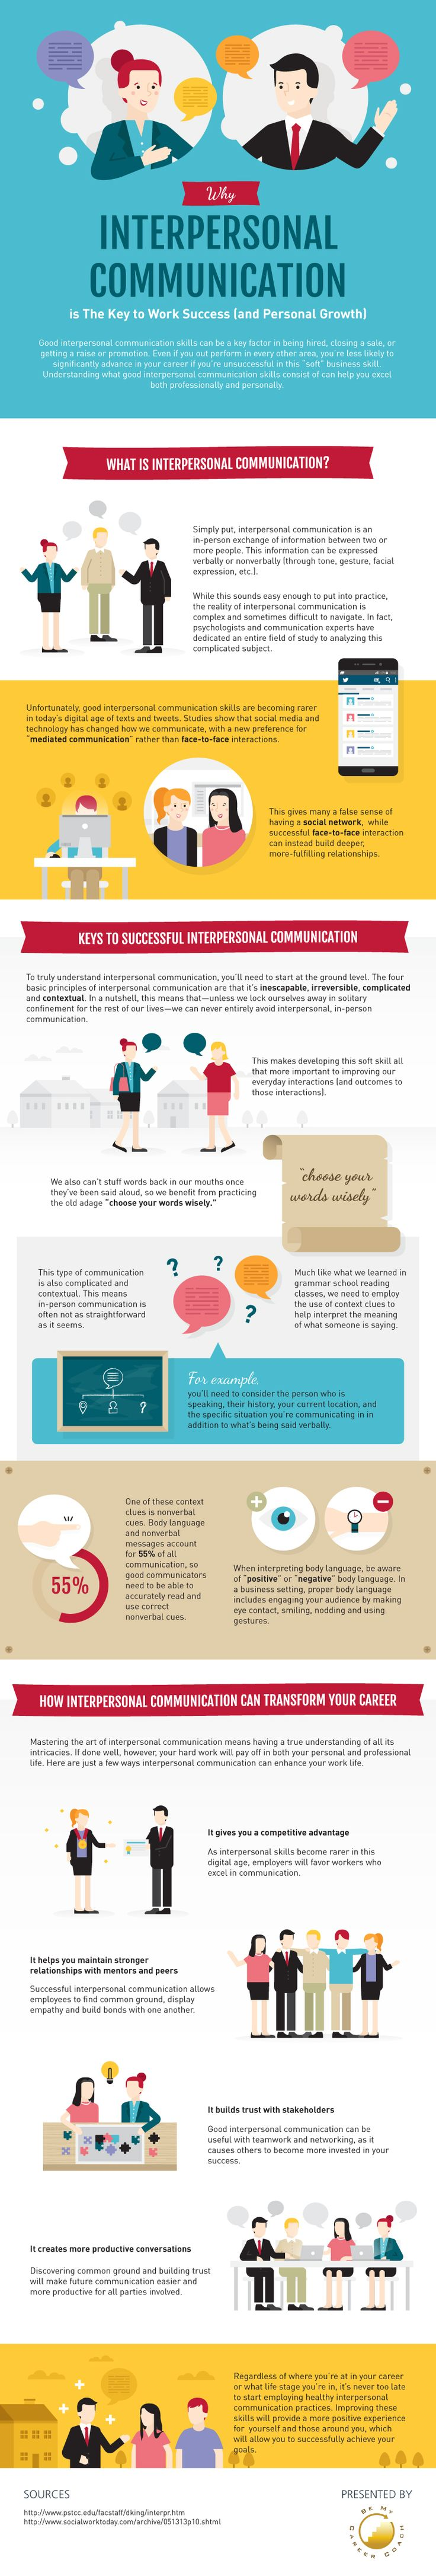 images about improve interpersonal communication on 4 principles of great interpersonal communication skills